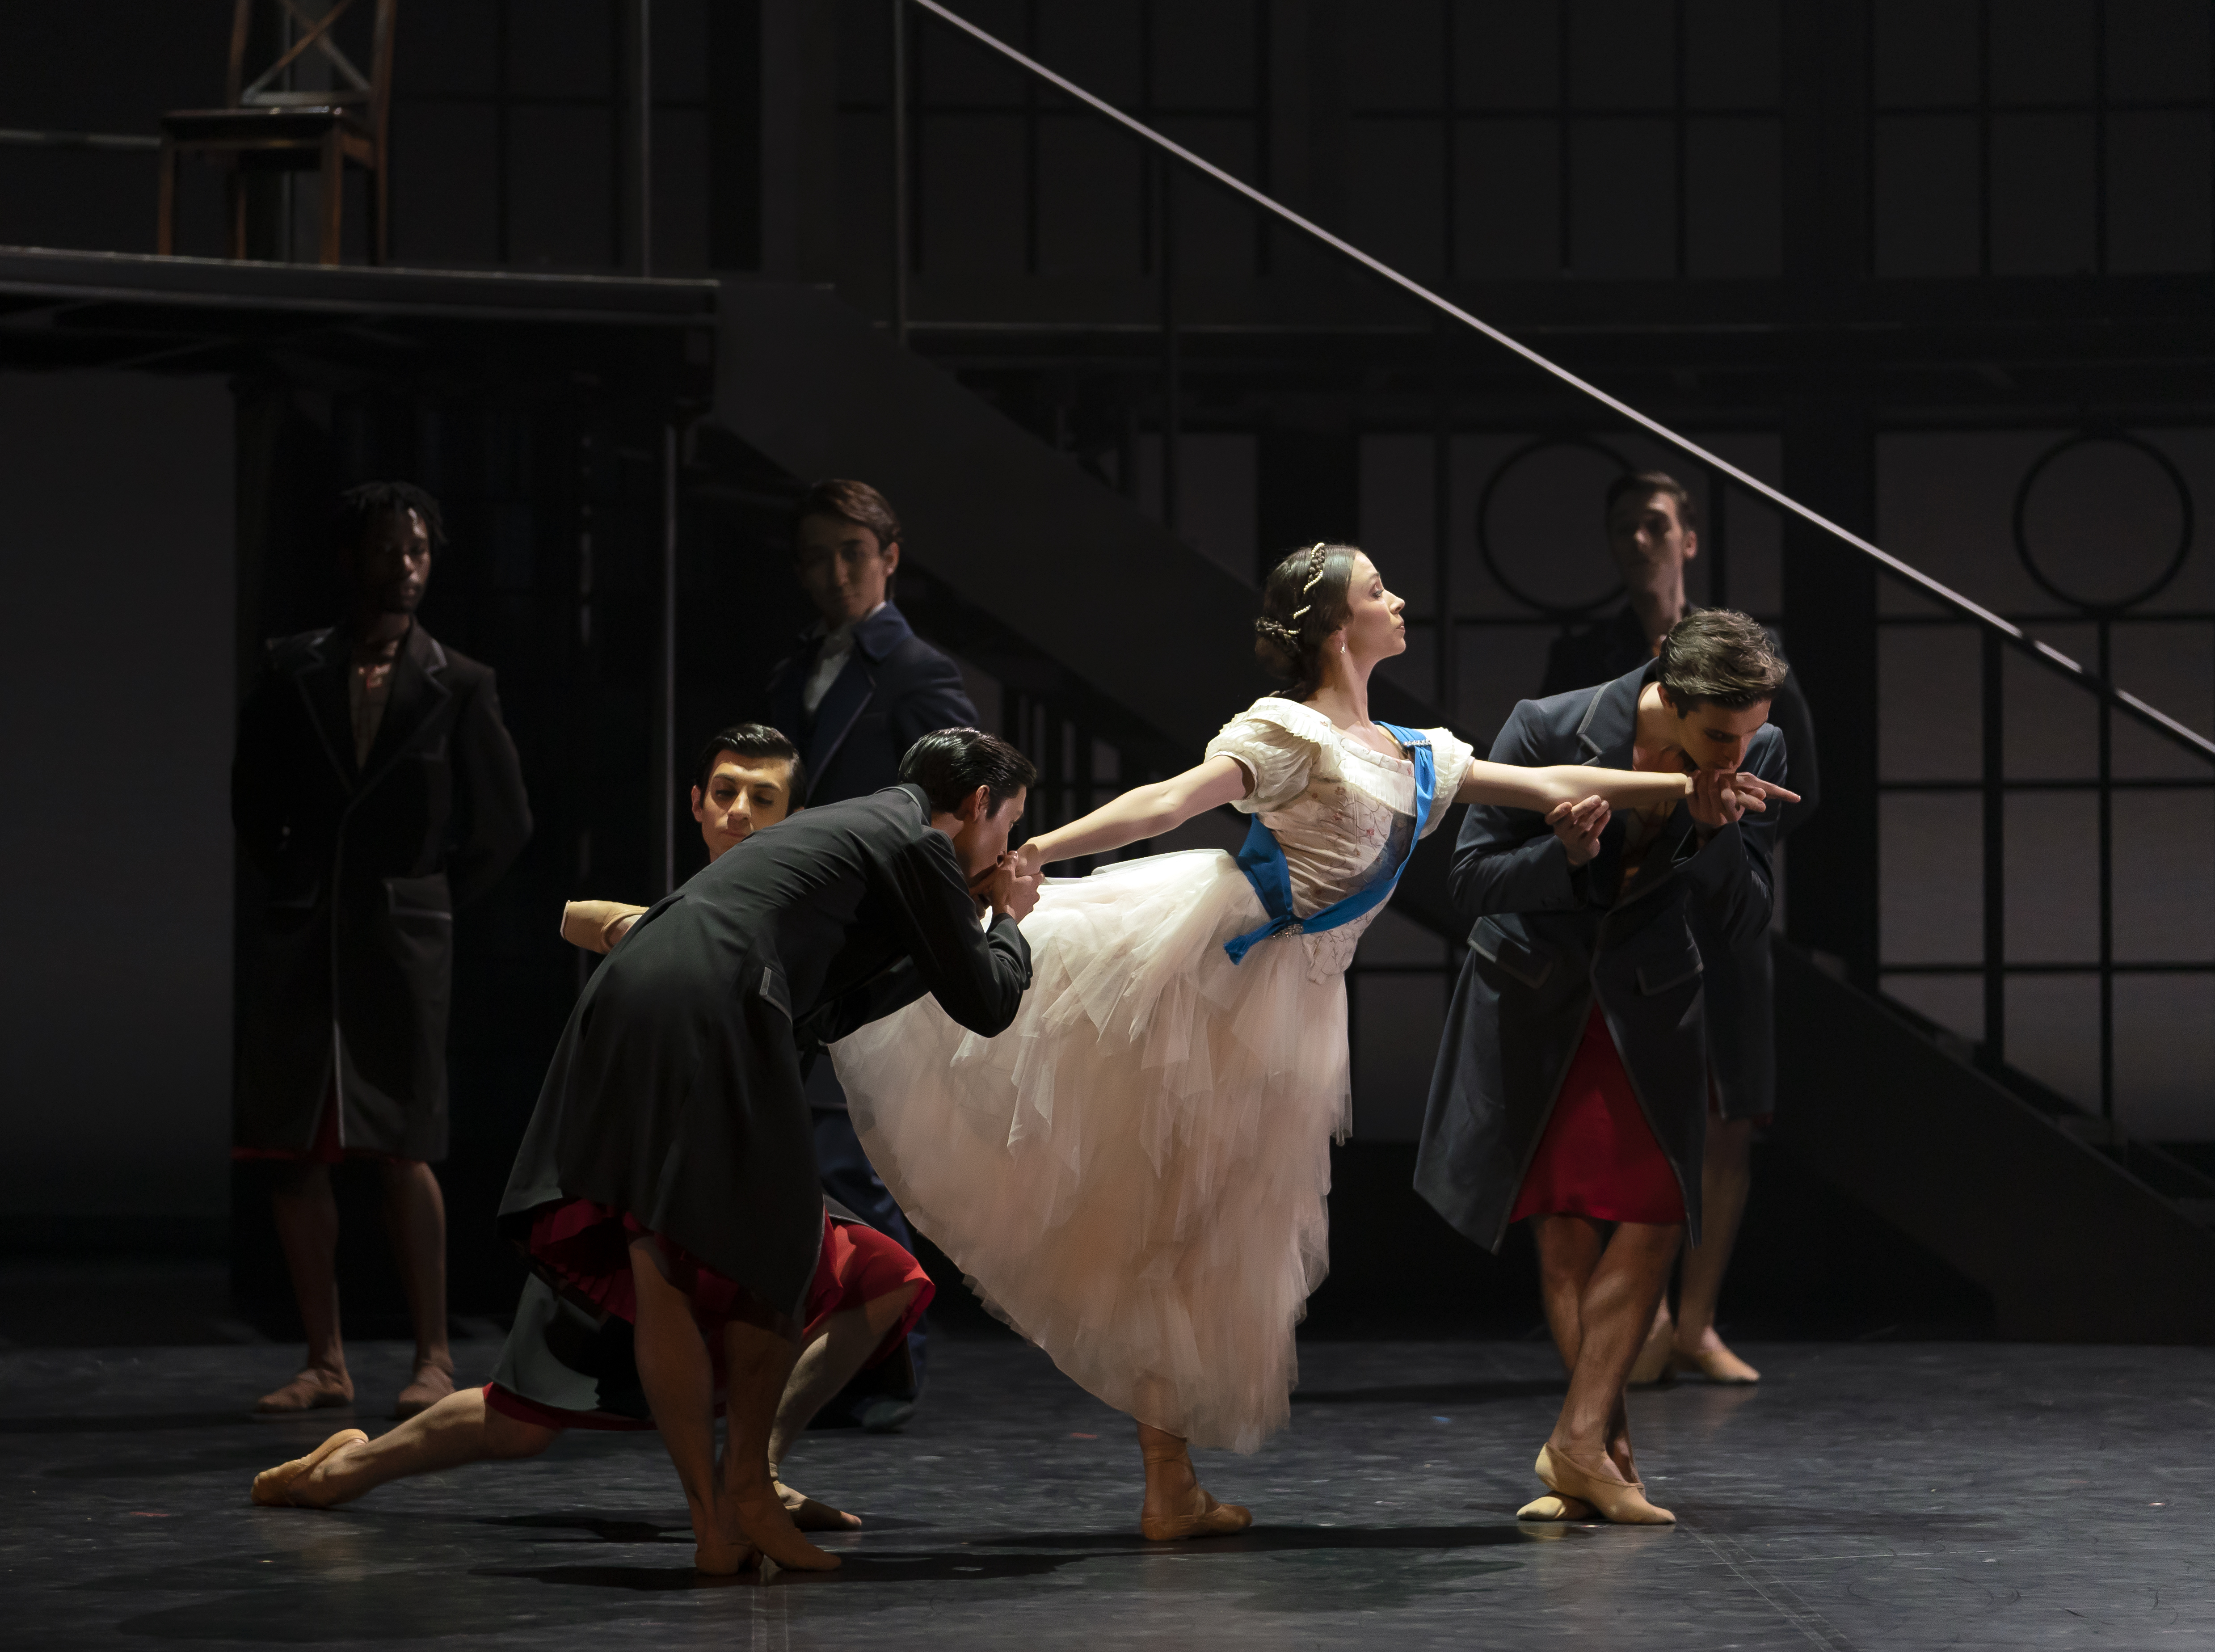 Northern Ballet's Victoria. Abigail Prudames as Victoria.